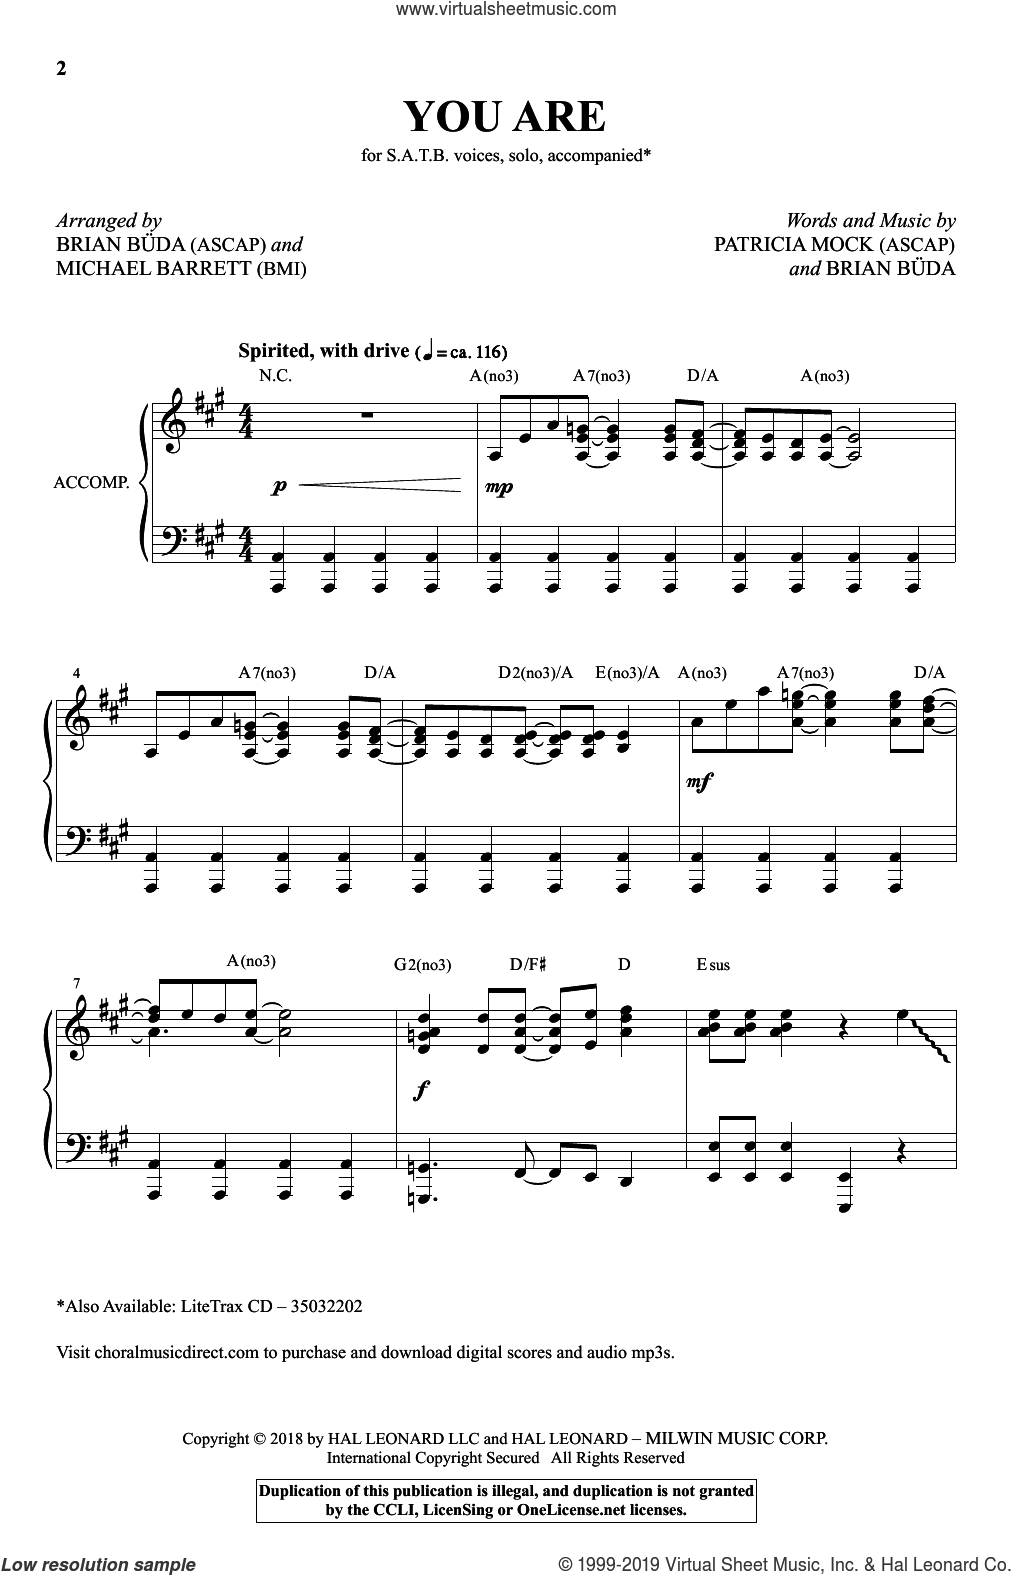 You Are (Brian Buda and Michael Barrett) sheet music for choir (SATB: soprano, alto, tenor, bass) by Michael Barrett, Brian Buda, Patricia Mock and Patricia Mock & Brian Buda, intermediate skill level